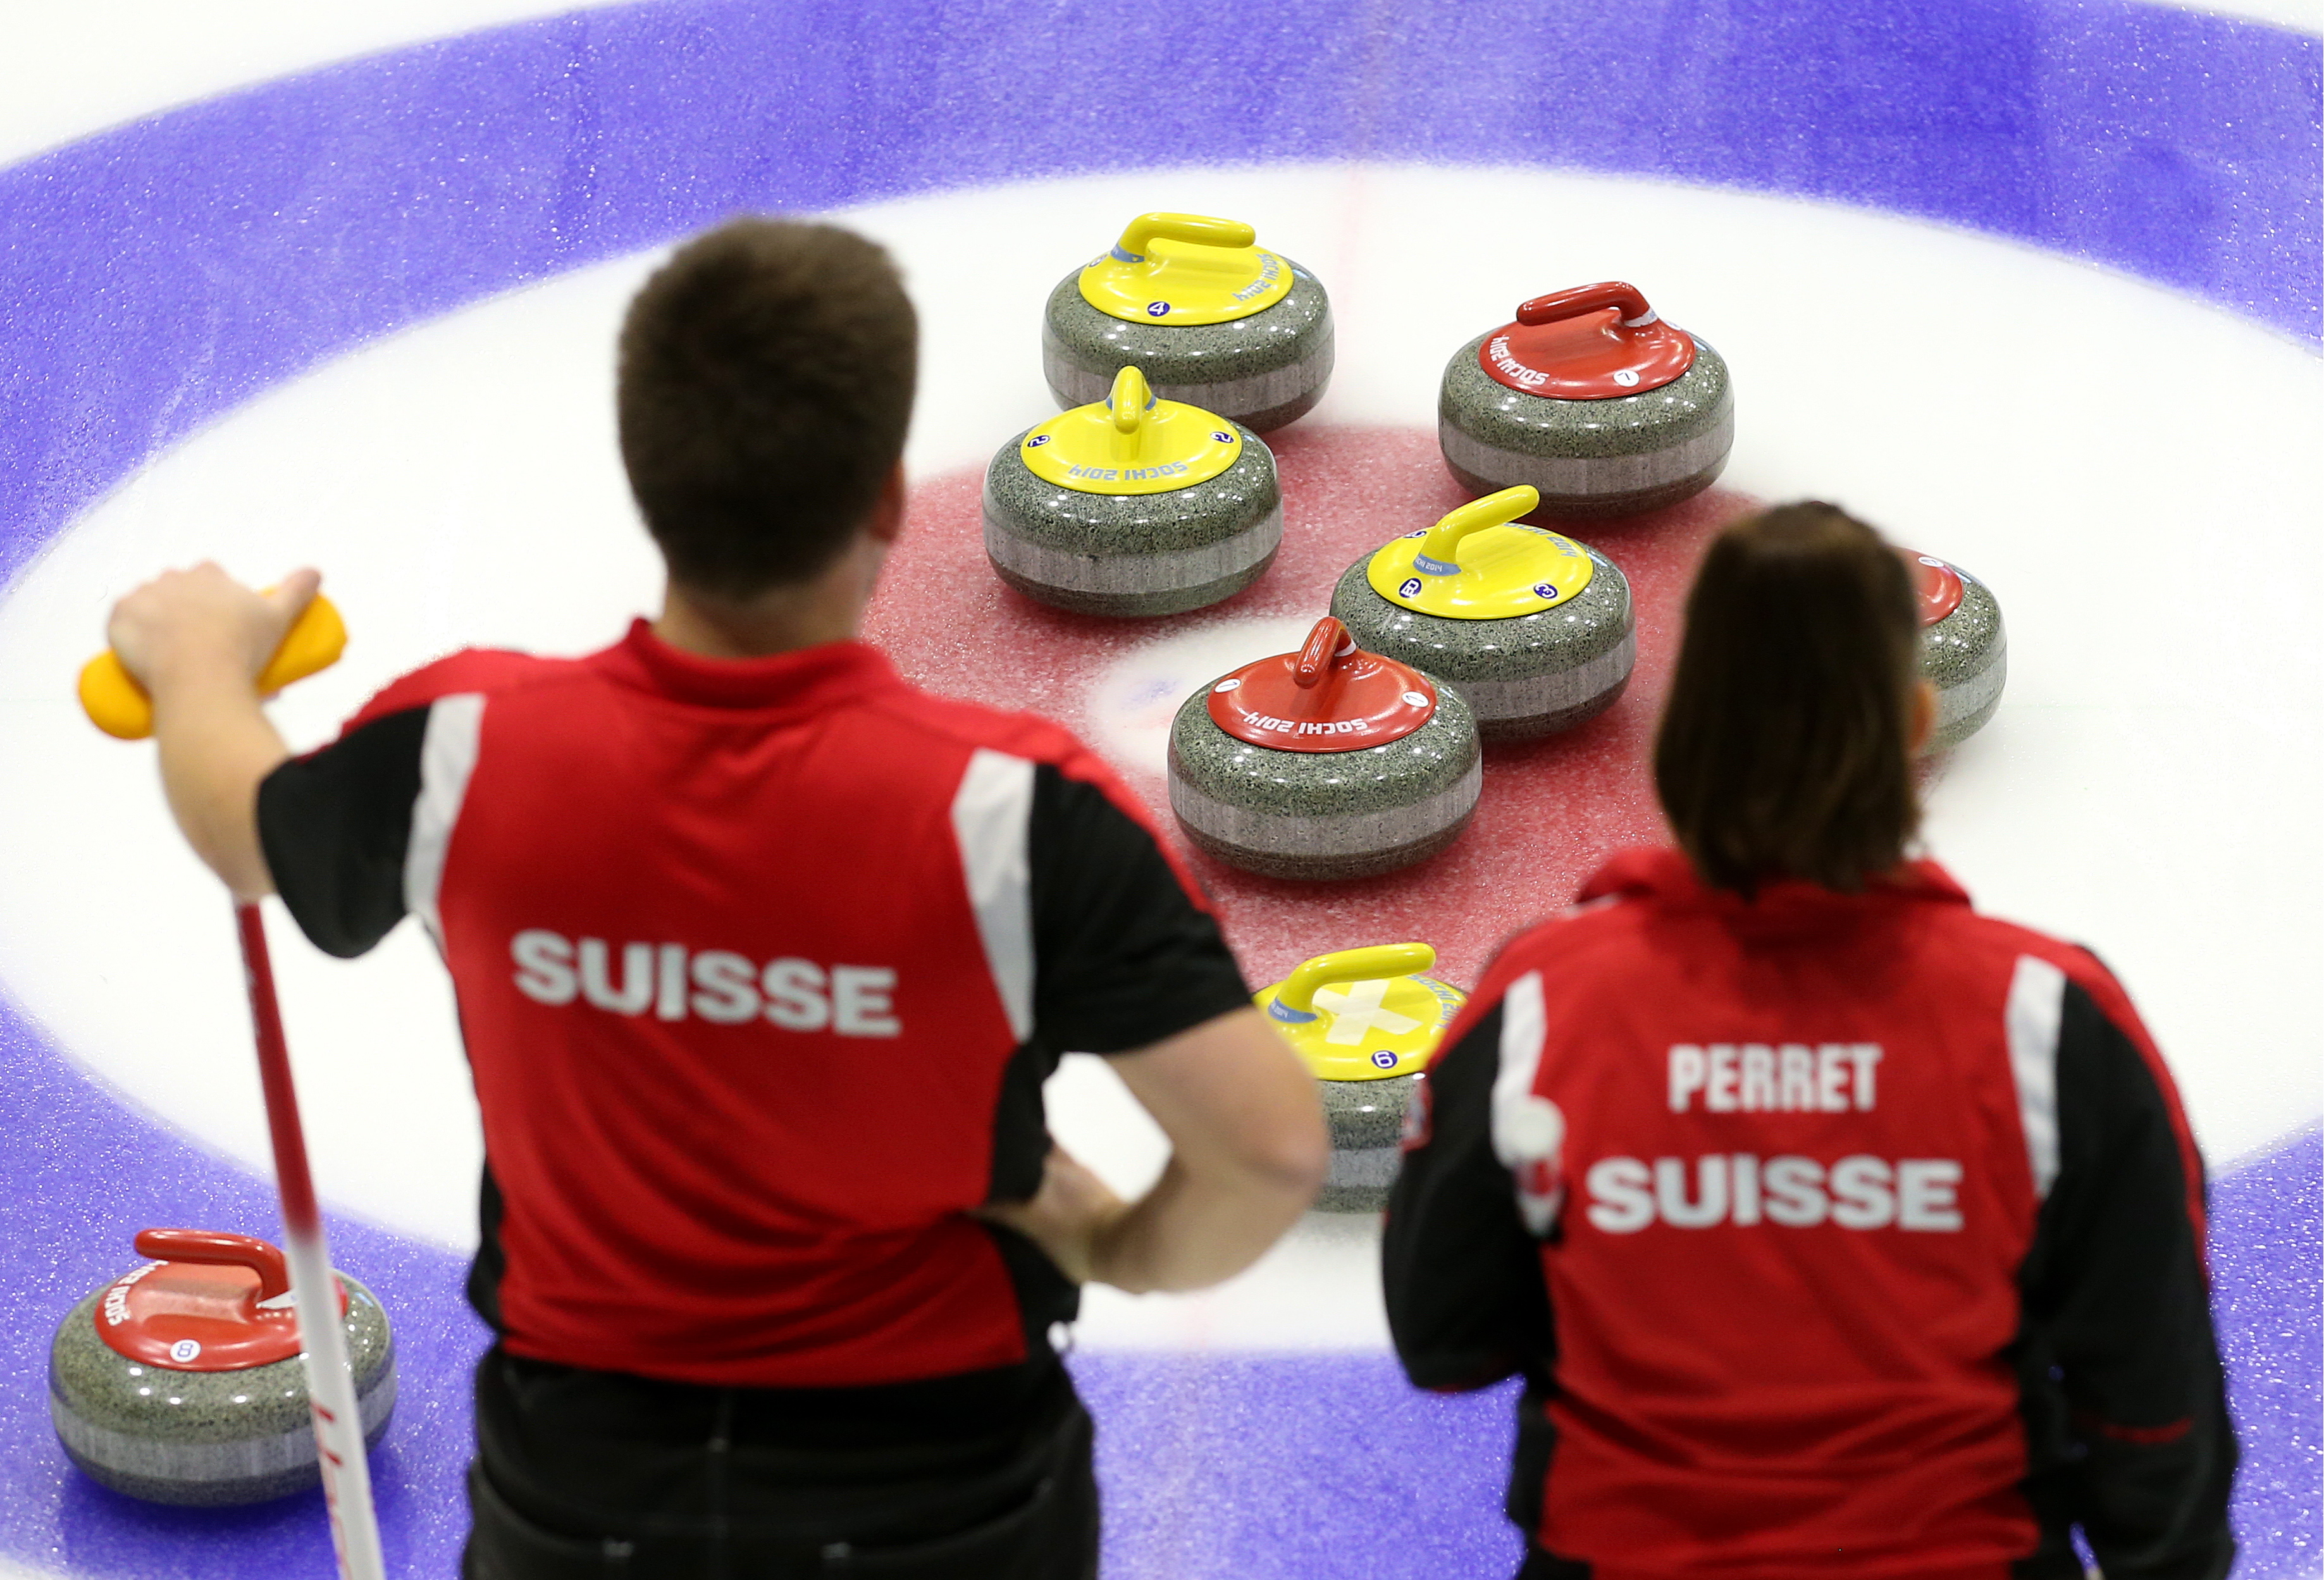 Martin Rios (L) and Jenny Perret of Team Perret (Glarus, Switzerland) in a match against Team Moskaleva (Dmitrov, Russia) at International Mixed Doubles Sochi 2017, an event of the 2017-2018 World Mixed Doubles Curling Tour, at the Ice Cube Curling Center.